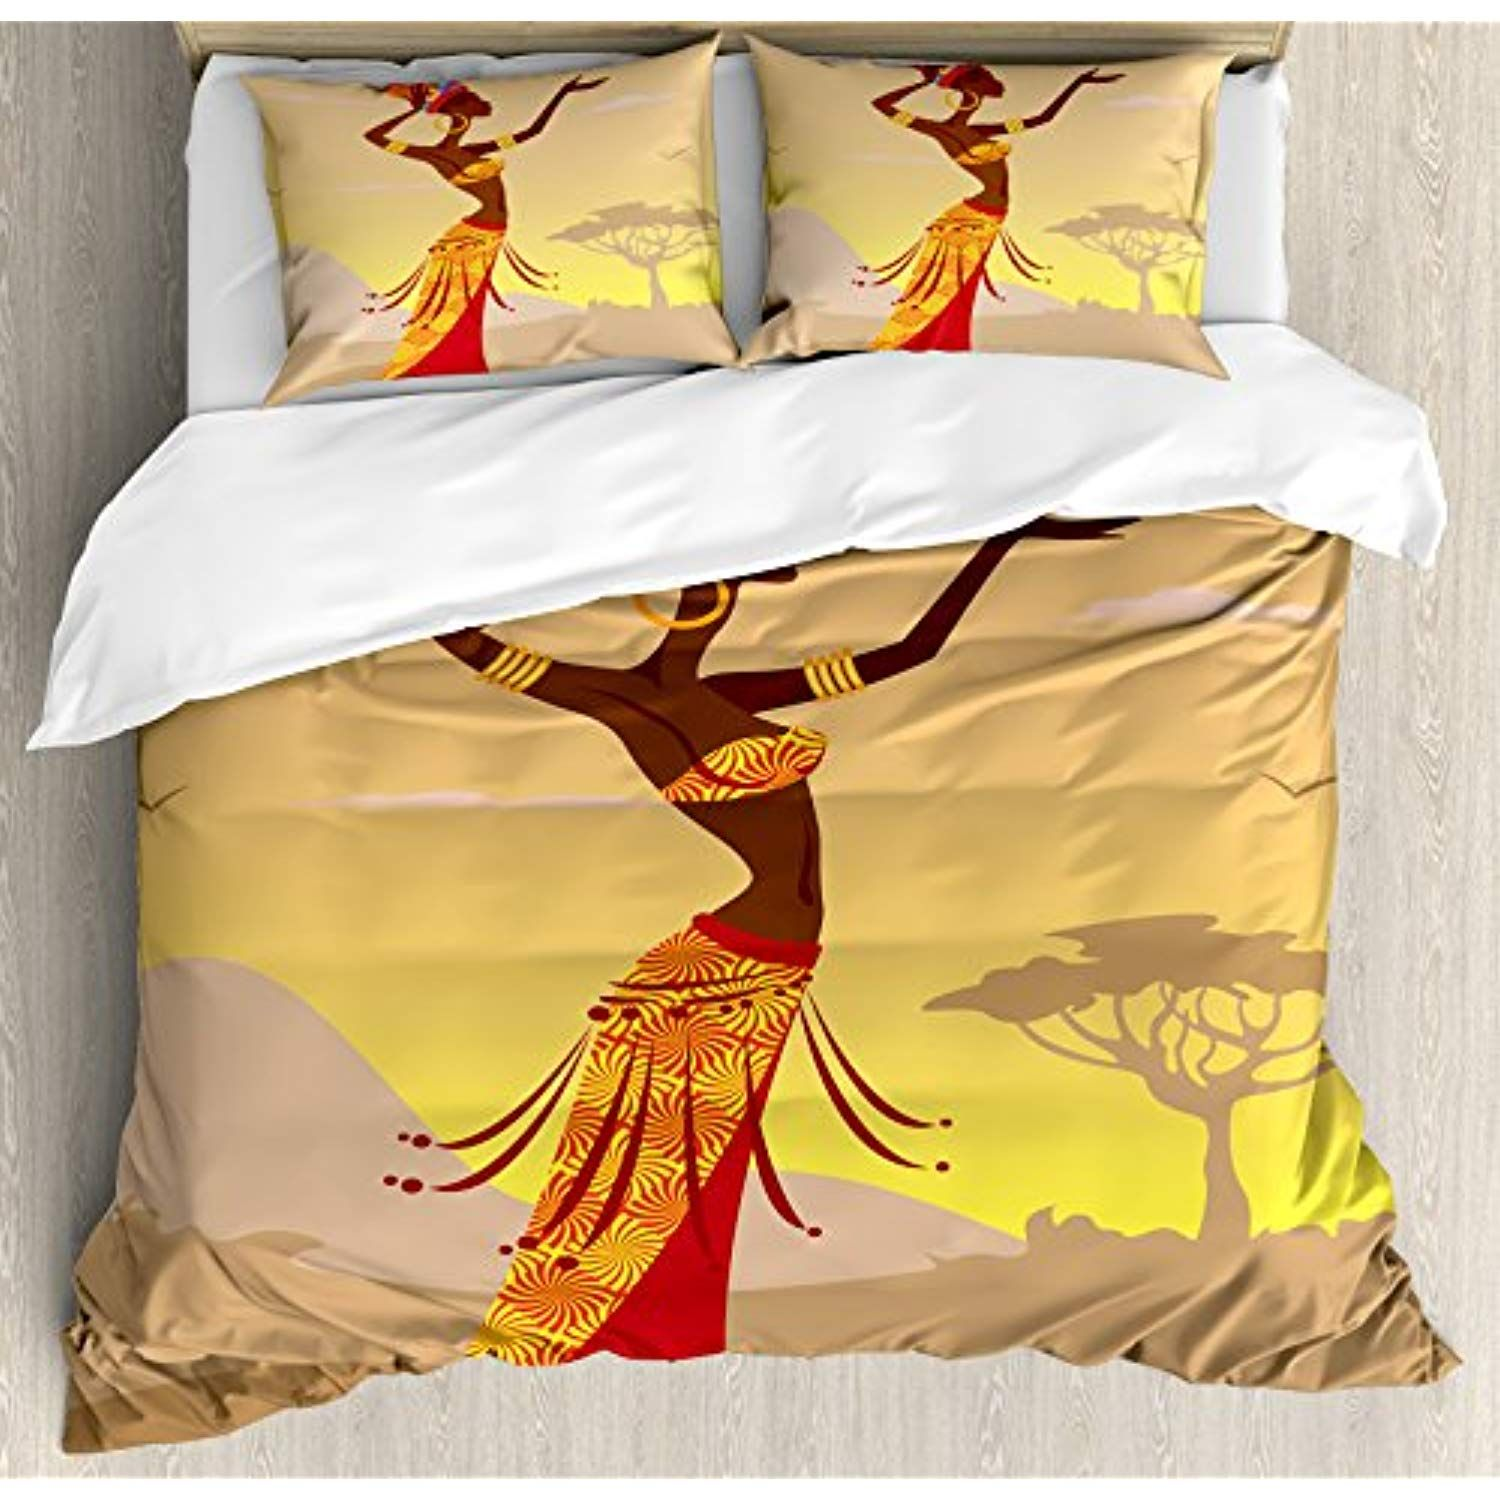 Ambesonne afro decor duvet cover set african woman in desert with